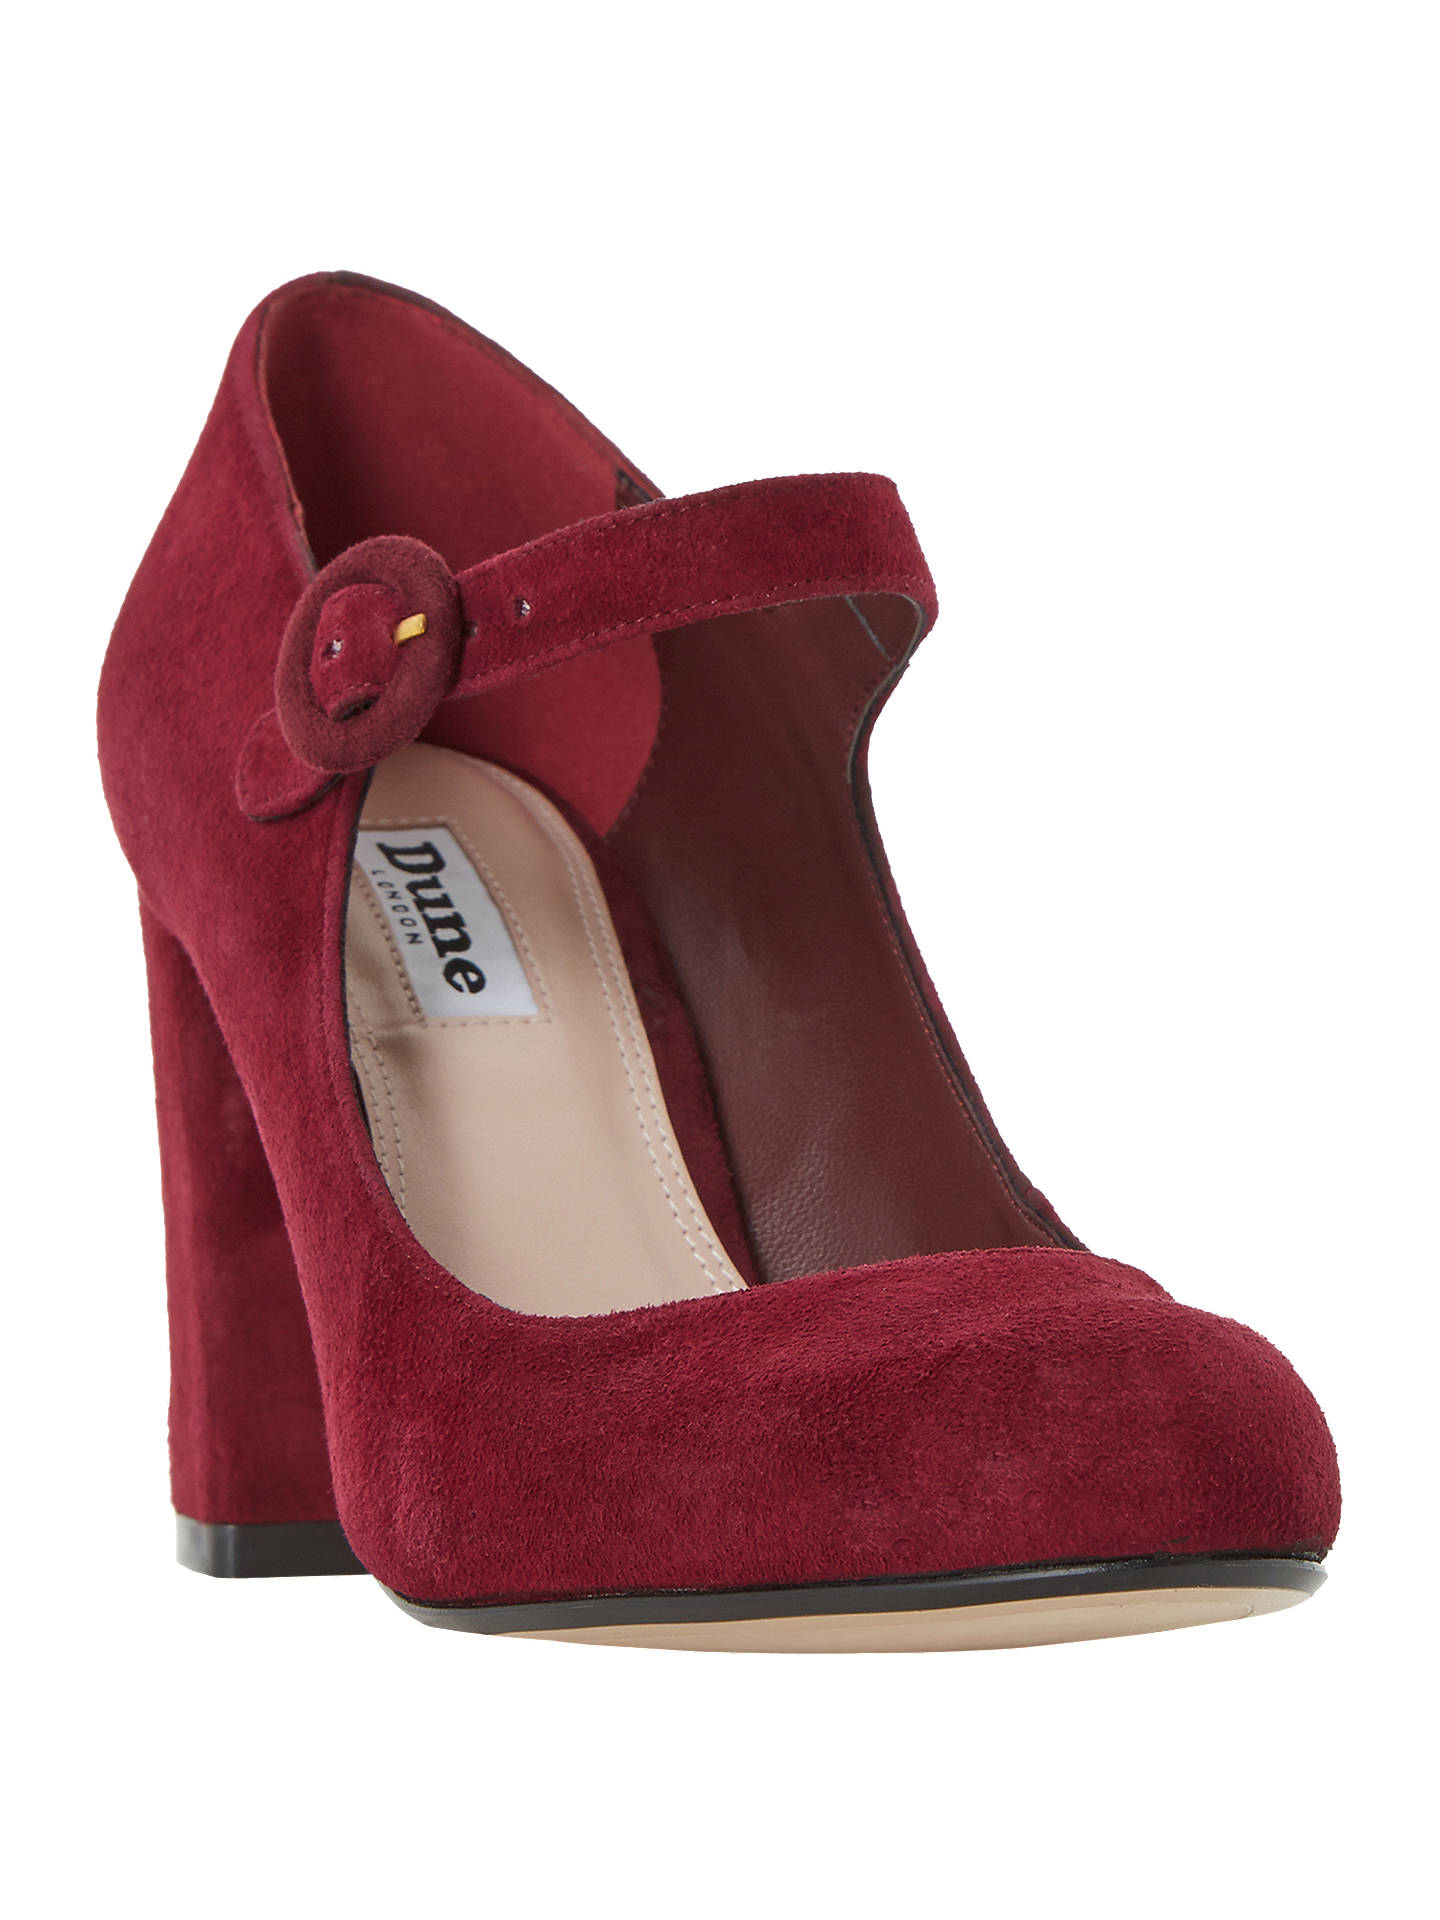 BuyDune Armorel Mary Jane Block Heel Court Shoes, Burgundy Suede, 3 Online at johnlewis.com